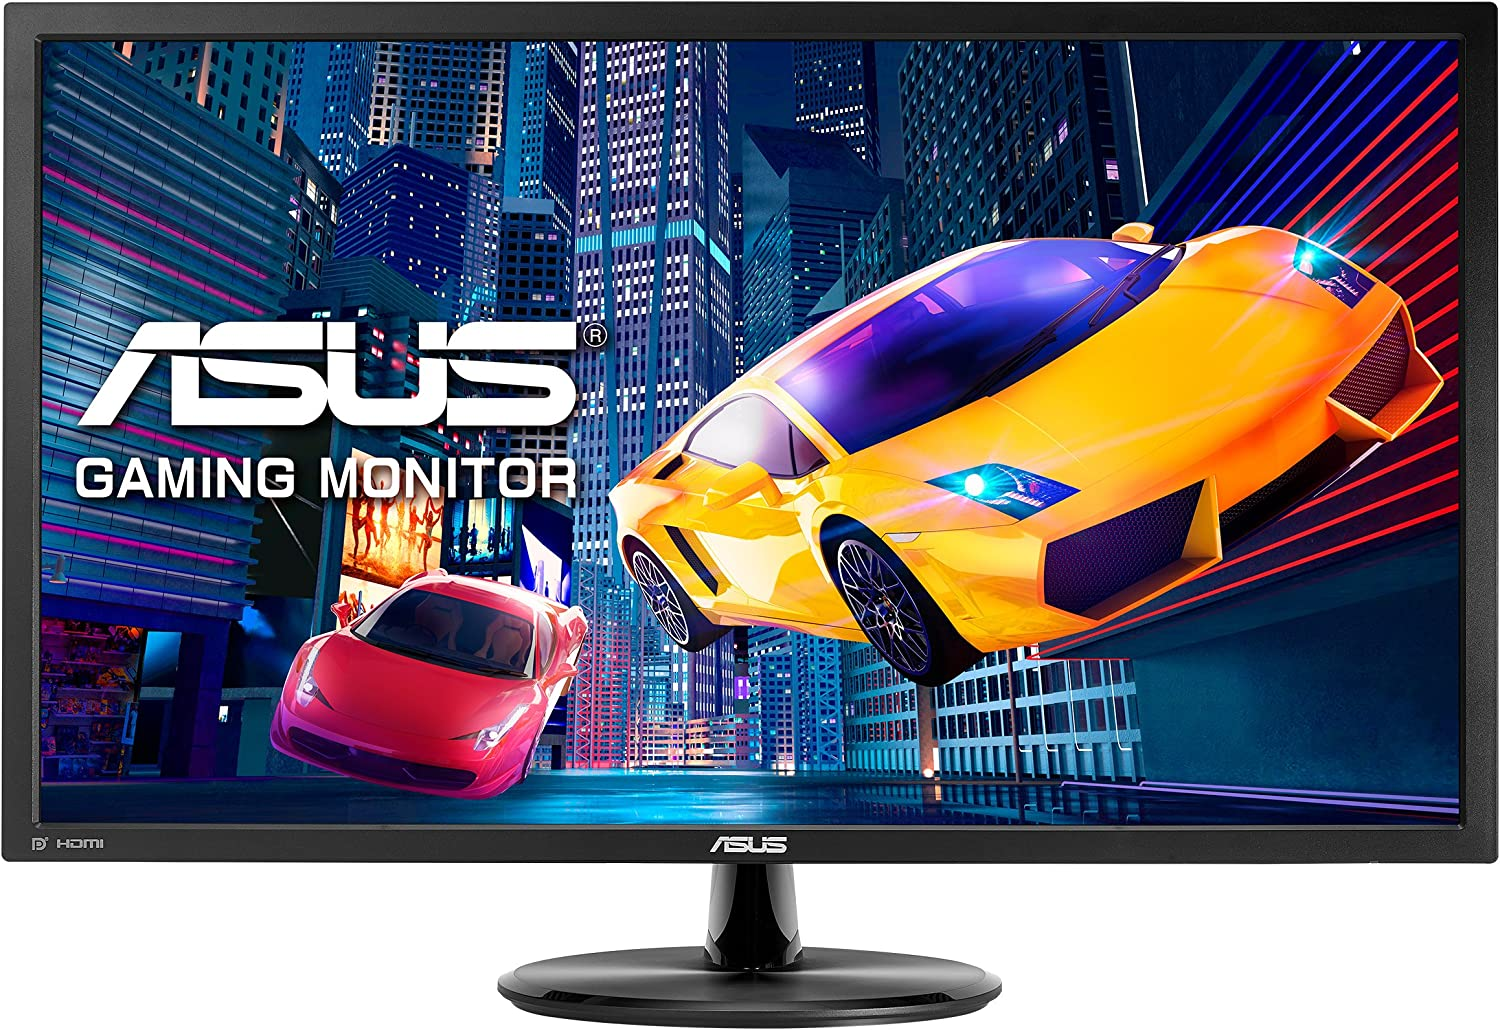 ASUS VP28UQG 4K Monitor - best 4K gaming monitor under 300